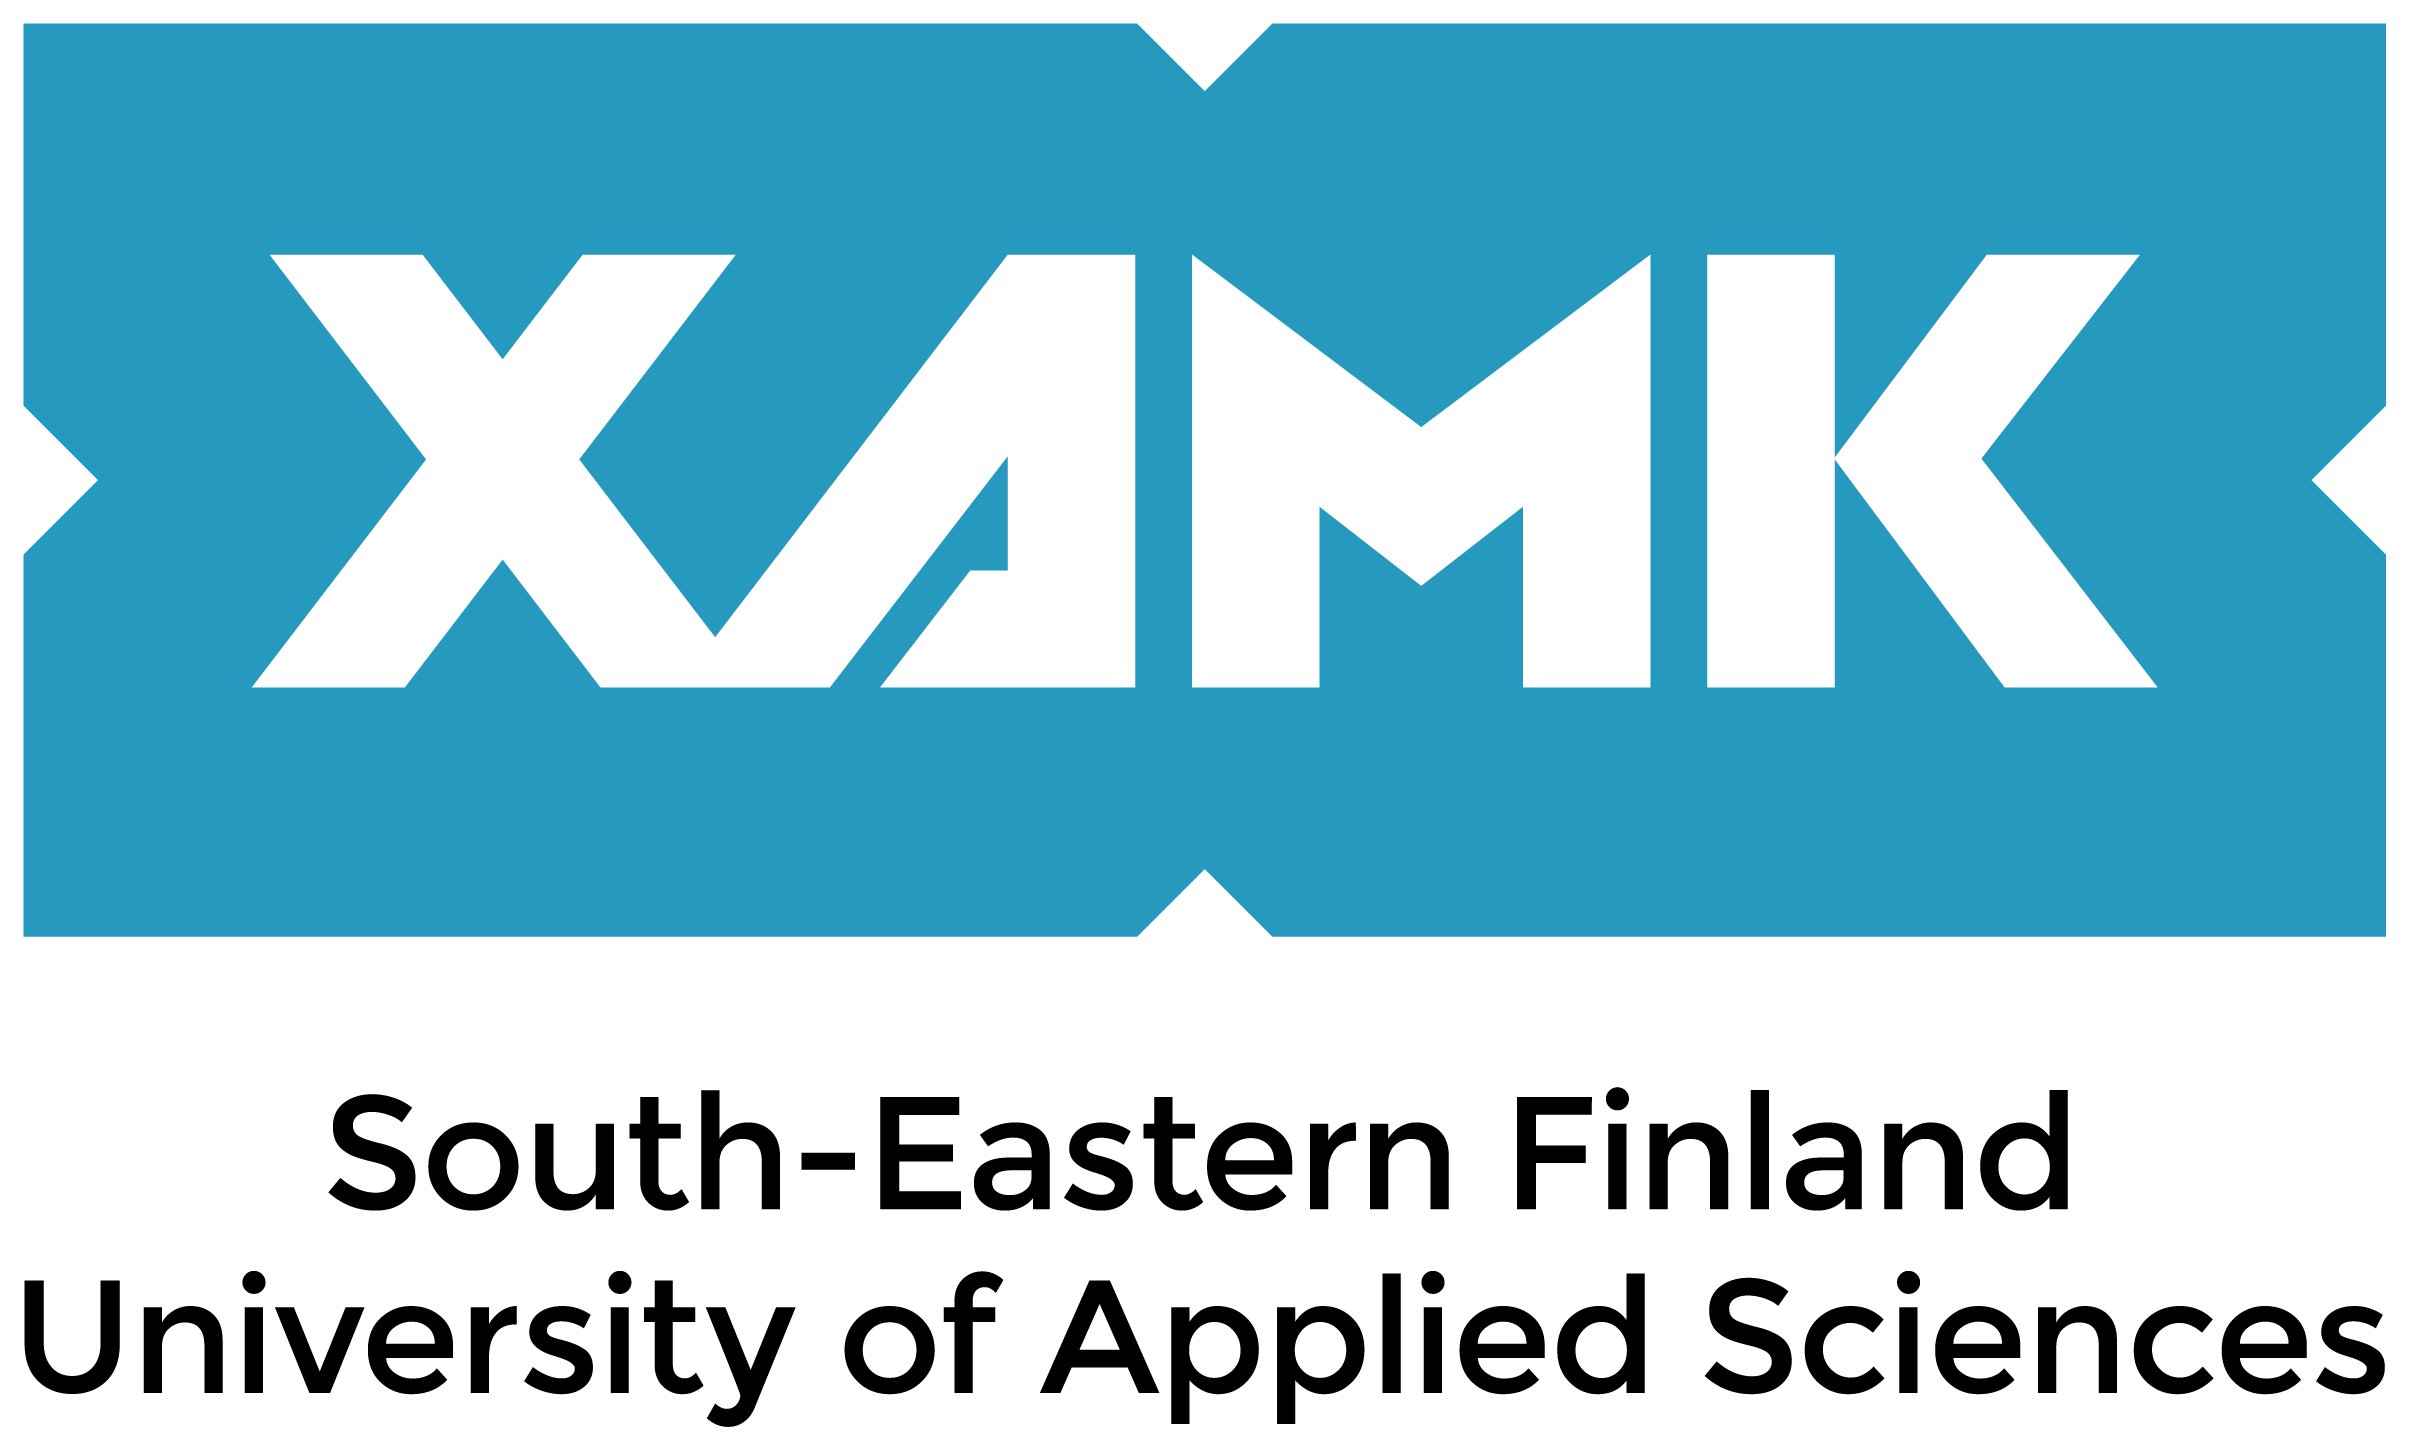 South-Eastern Finland University of Applied Sciences